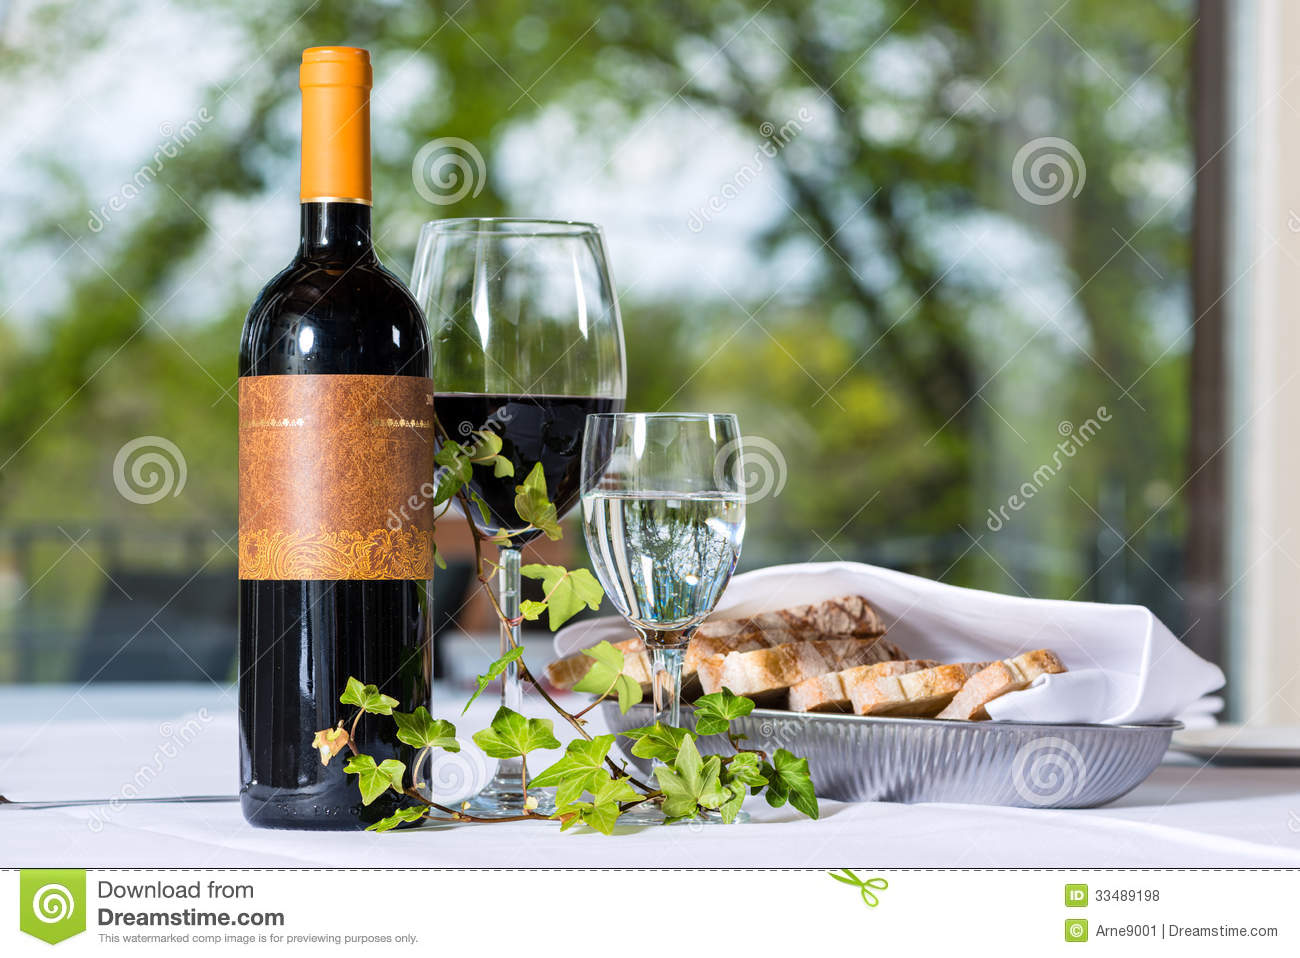 Red Wine With Bottle And Glass On A Table Royalty Free  : red wine bottle glass table arrangement bred fine dining restaurant 33489198 from www.dreamstime.com size 1300 x 958 jpeg 152kB